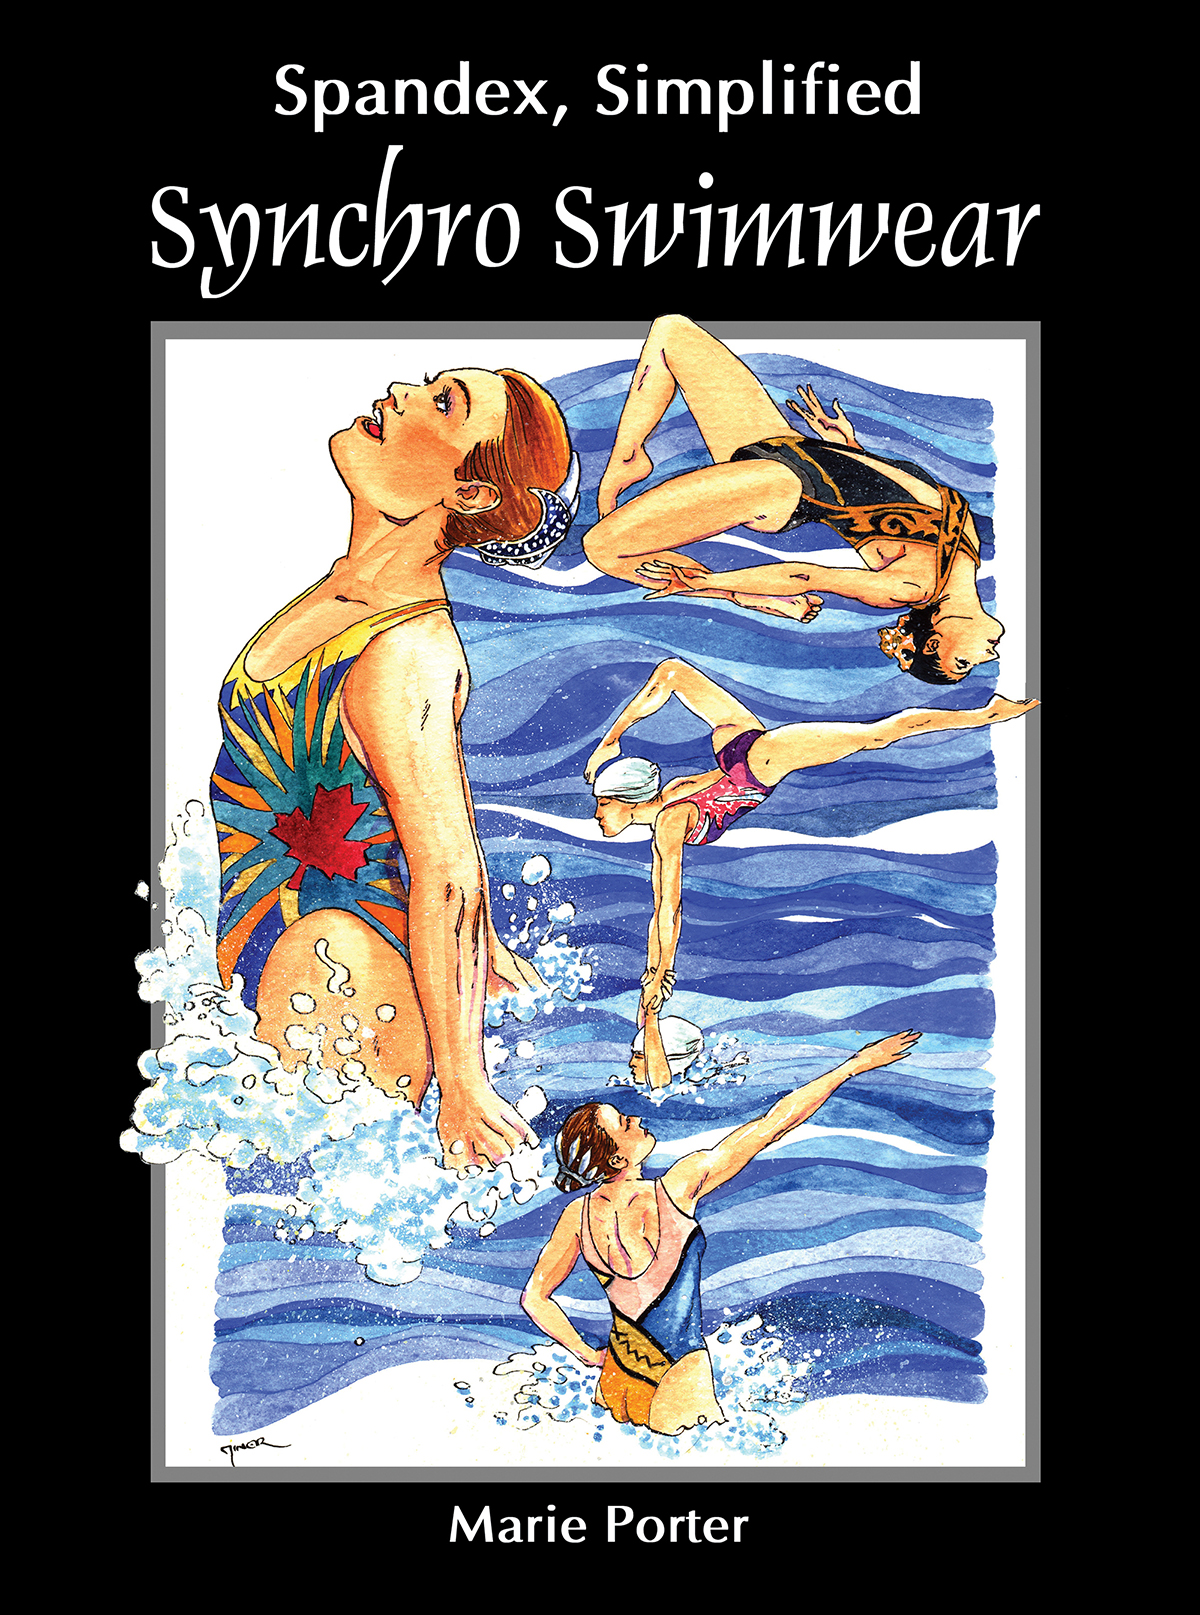 The cover image for Synchro Swimwear. A watercolour painting of 4 synchro swimmers in action, with a black border and white lettering.